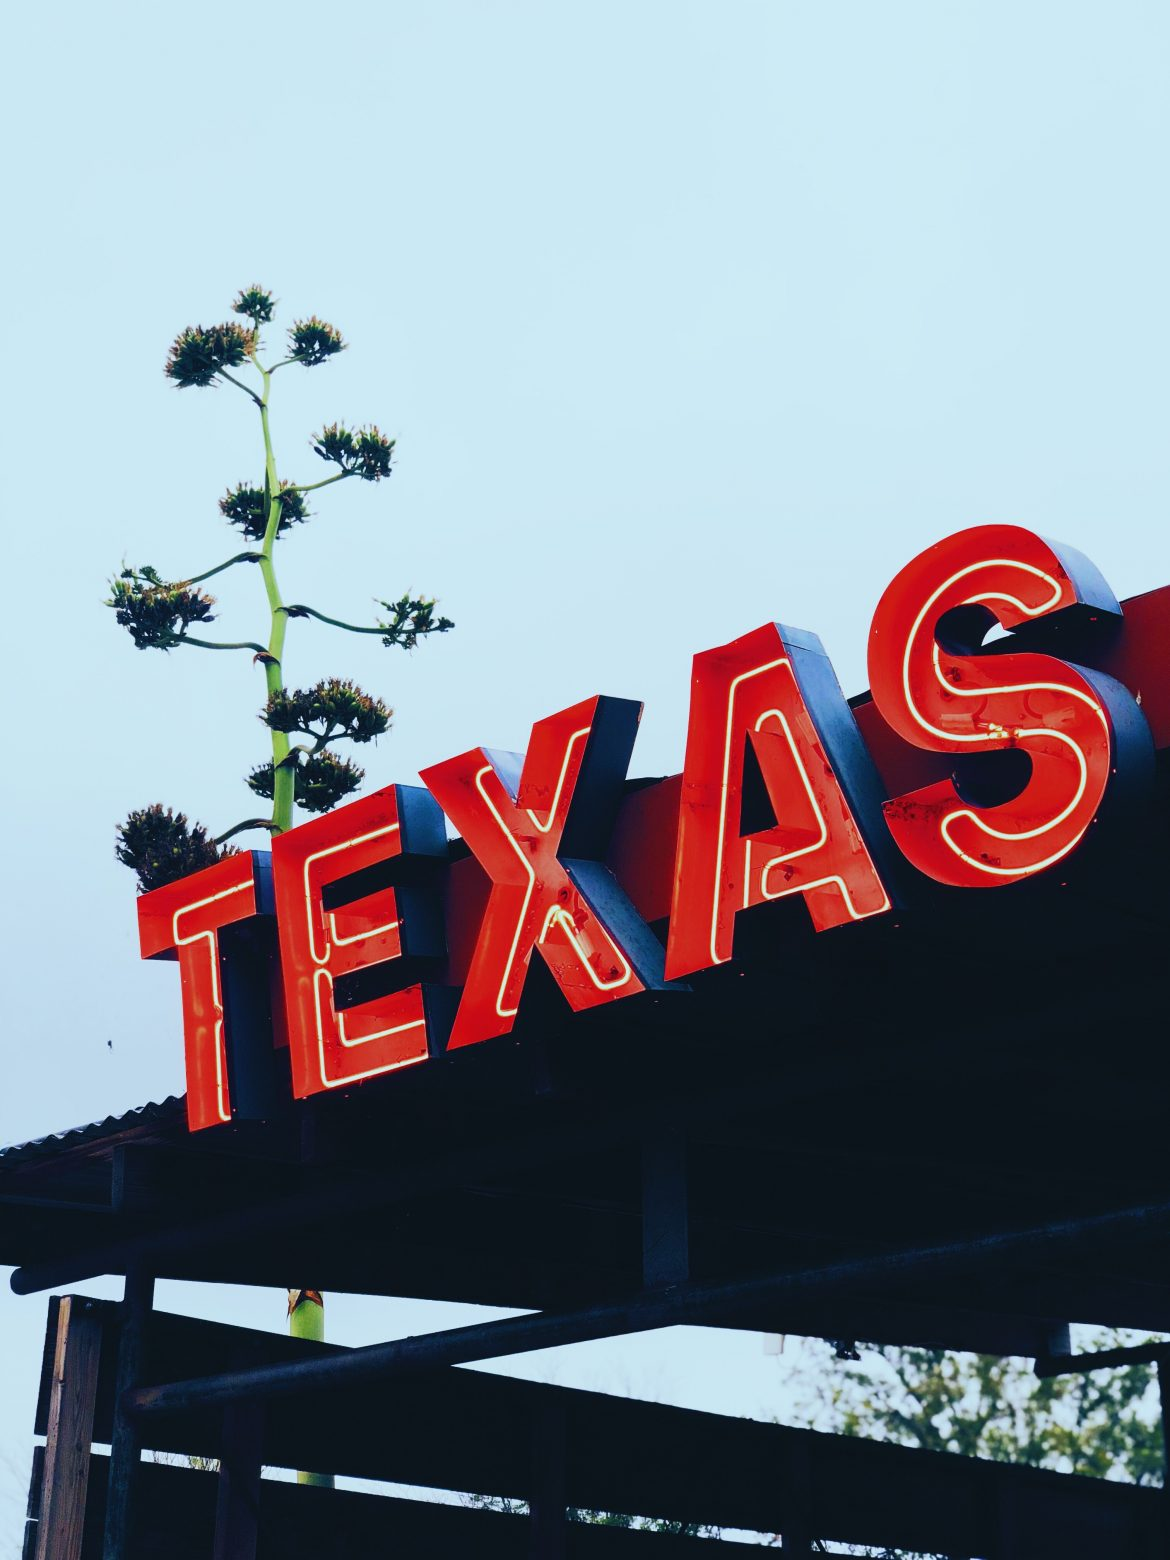 Finding owner information for properties in Tarrant county, TX